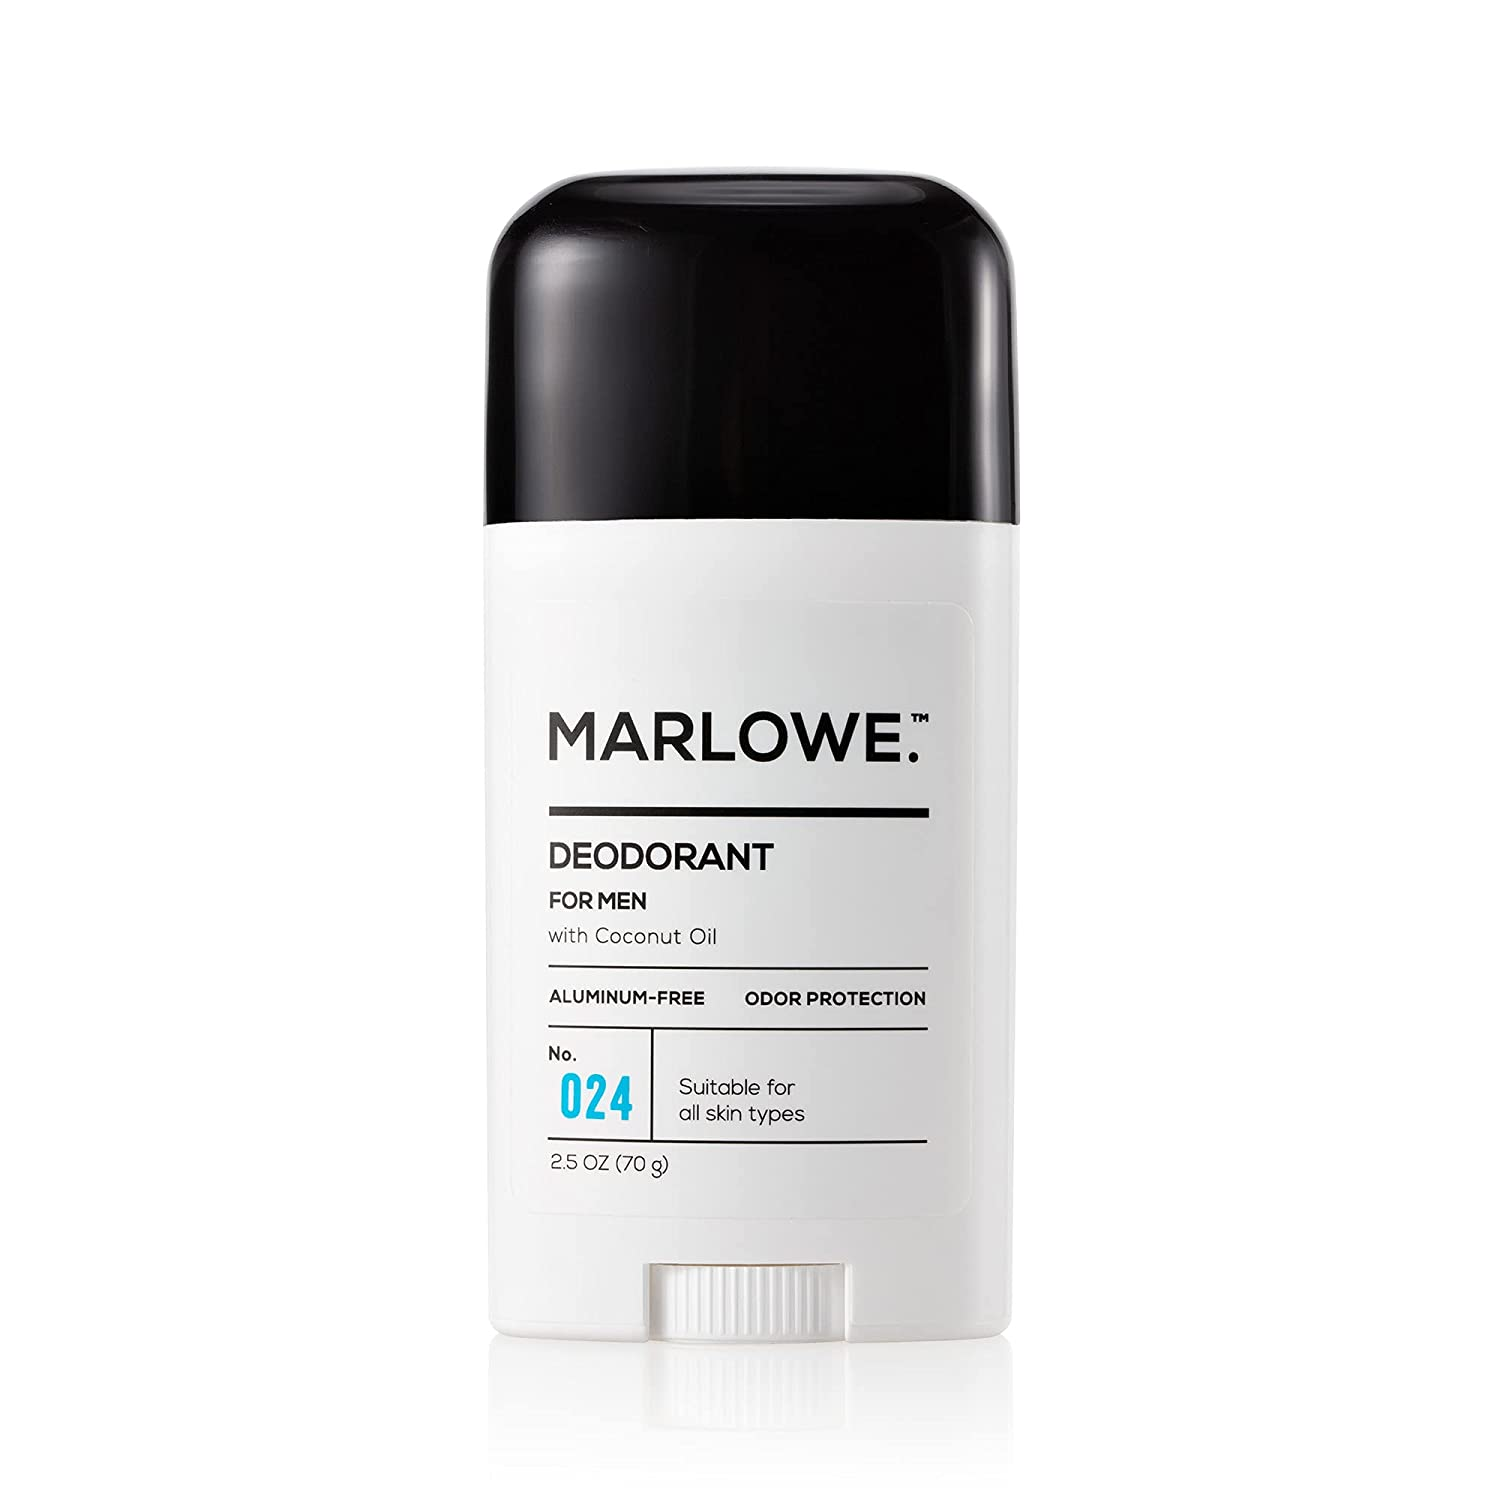 MARLOWE. No. 024 Natural Easy-to-use Deodorant Free 2.5oz for Men Aluminum Time sale